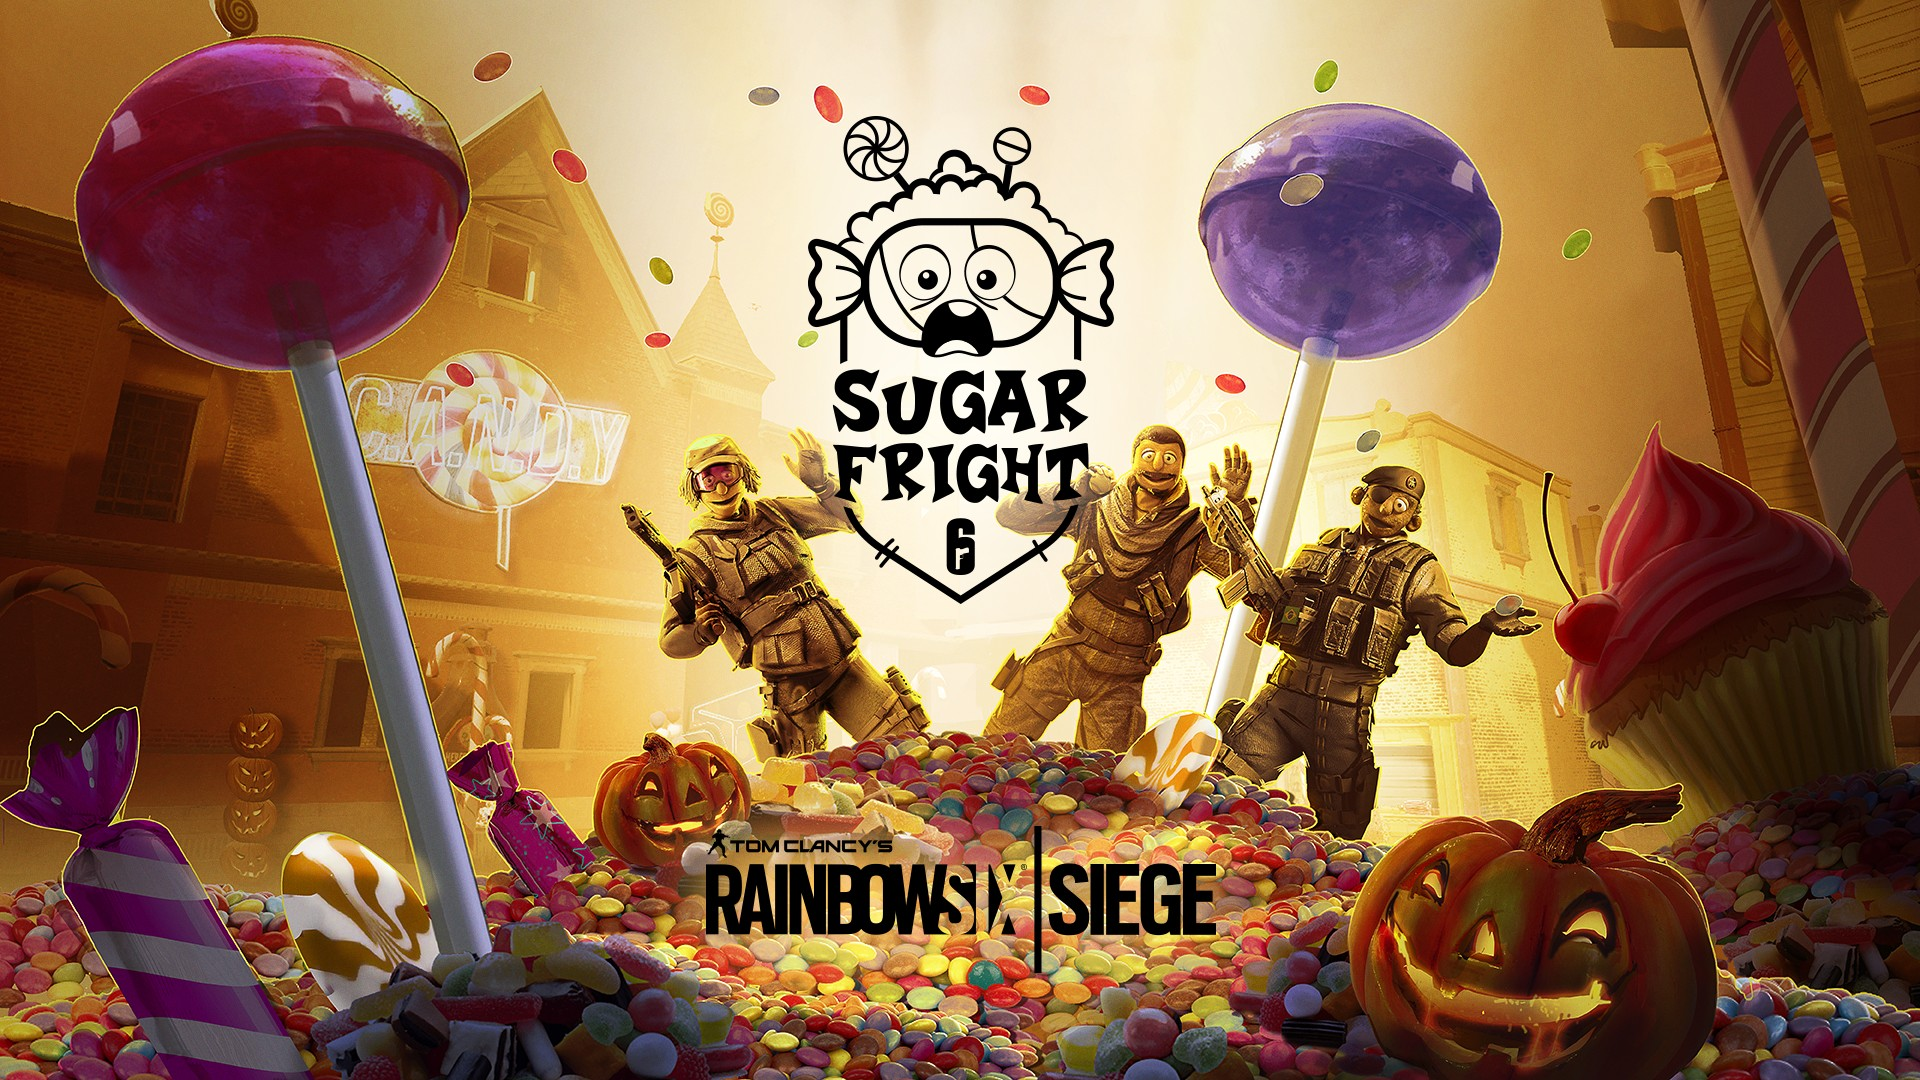 Rainbow Six Siege Announces Limited Time Halloween Event: Sugar Fright